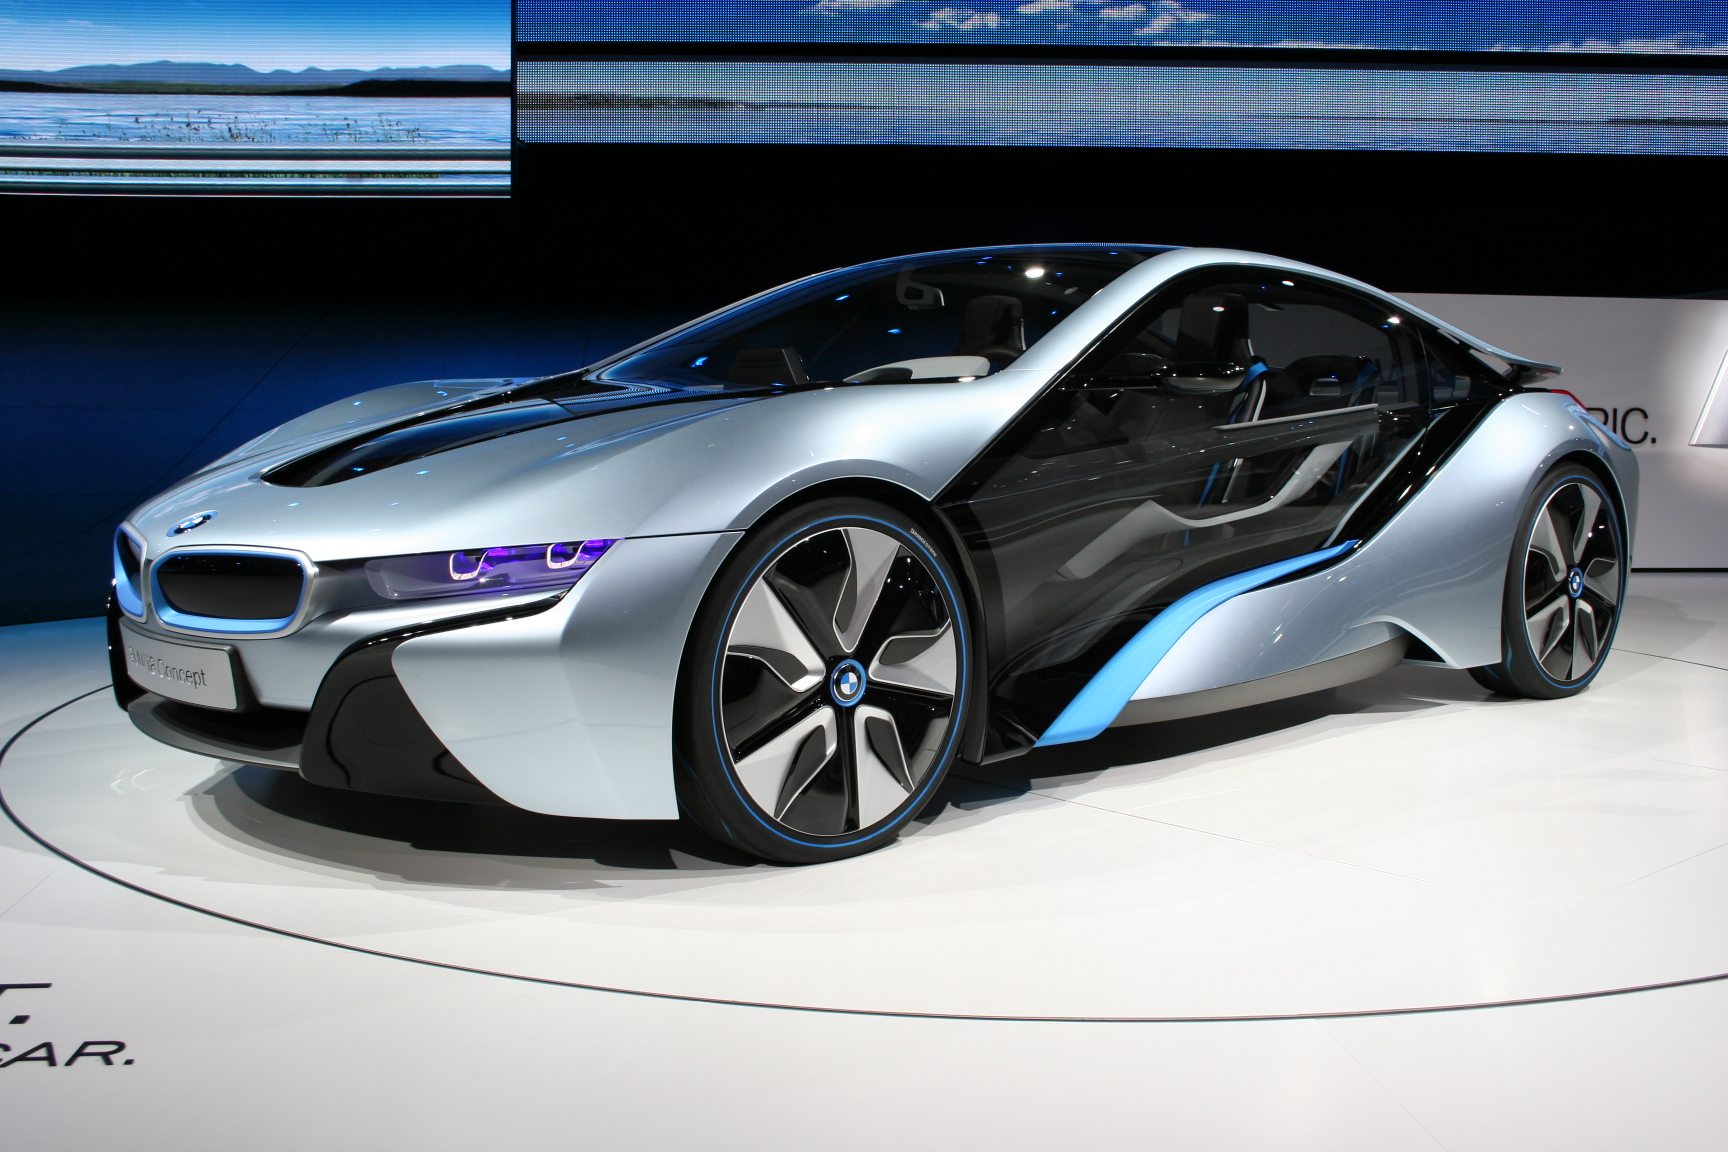 File:BMW i8 Concept IAA.jpg - Wikimedia Commons